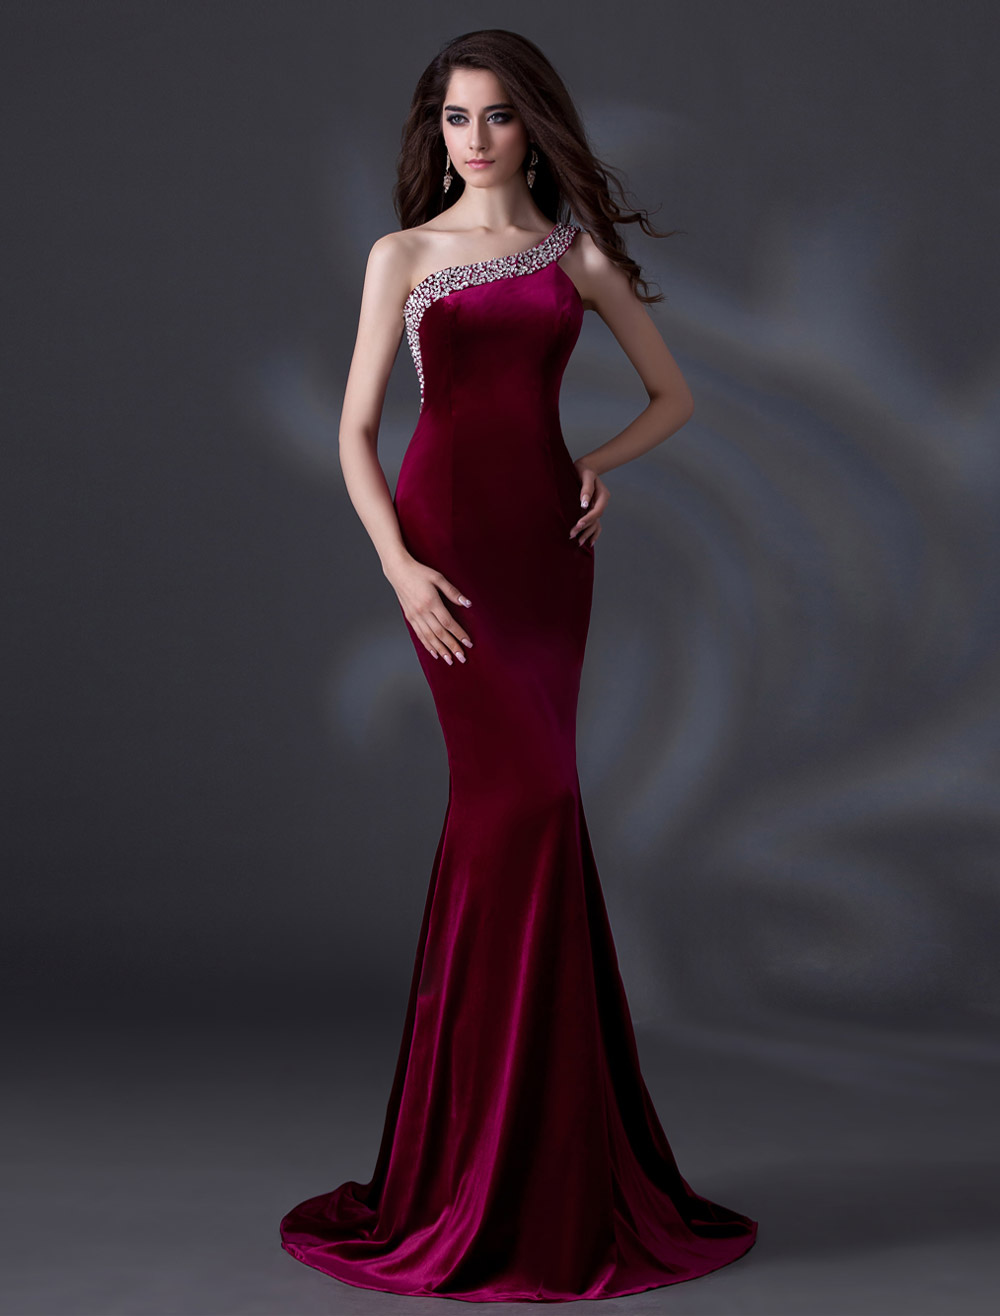 Elegant Burgundy One-Shoulder Beading Mermaid Velvet Evening Dress